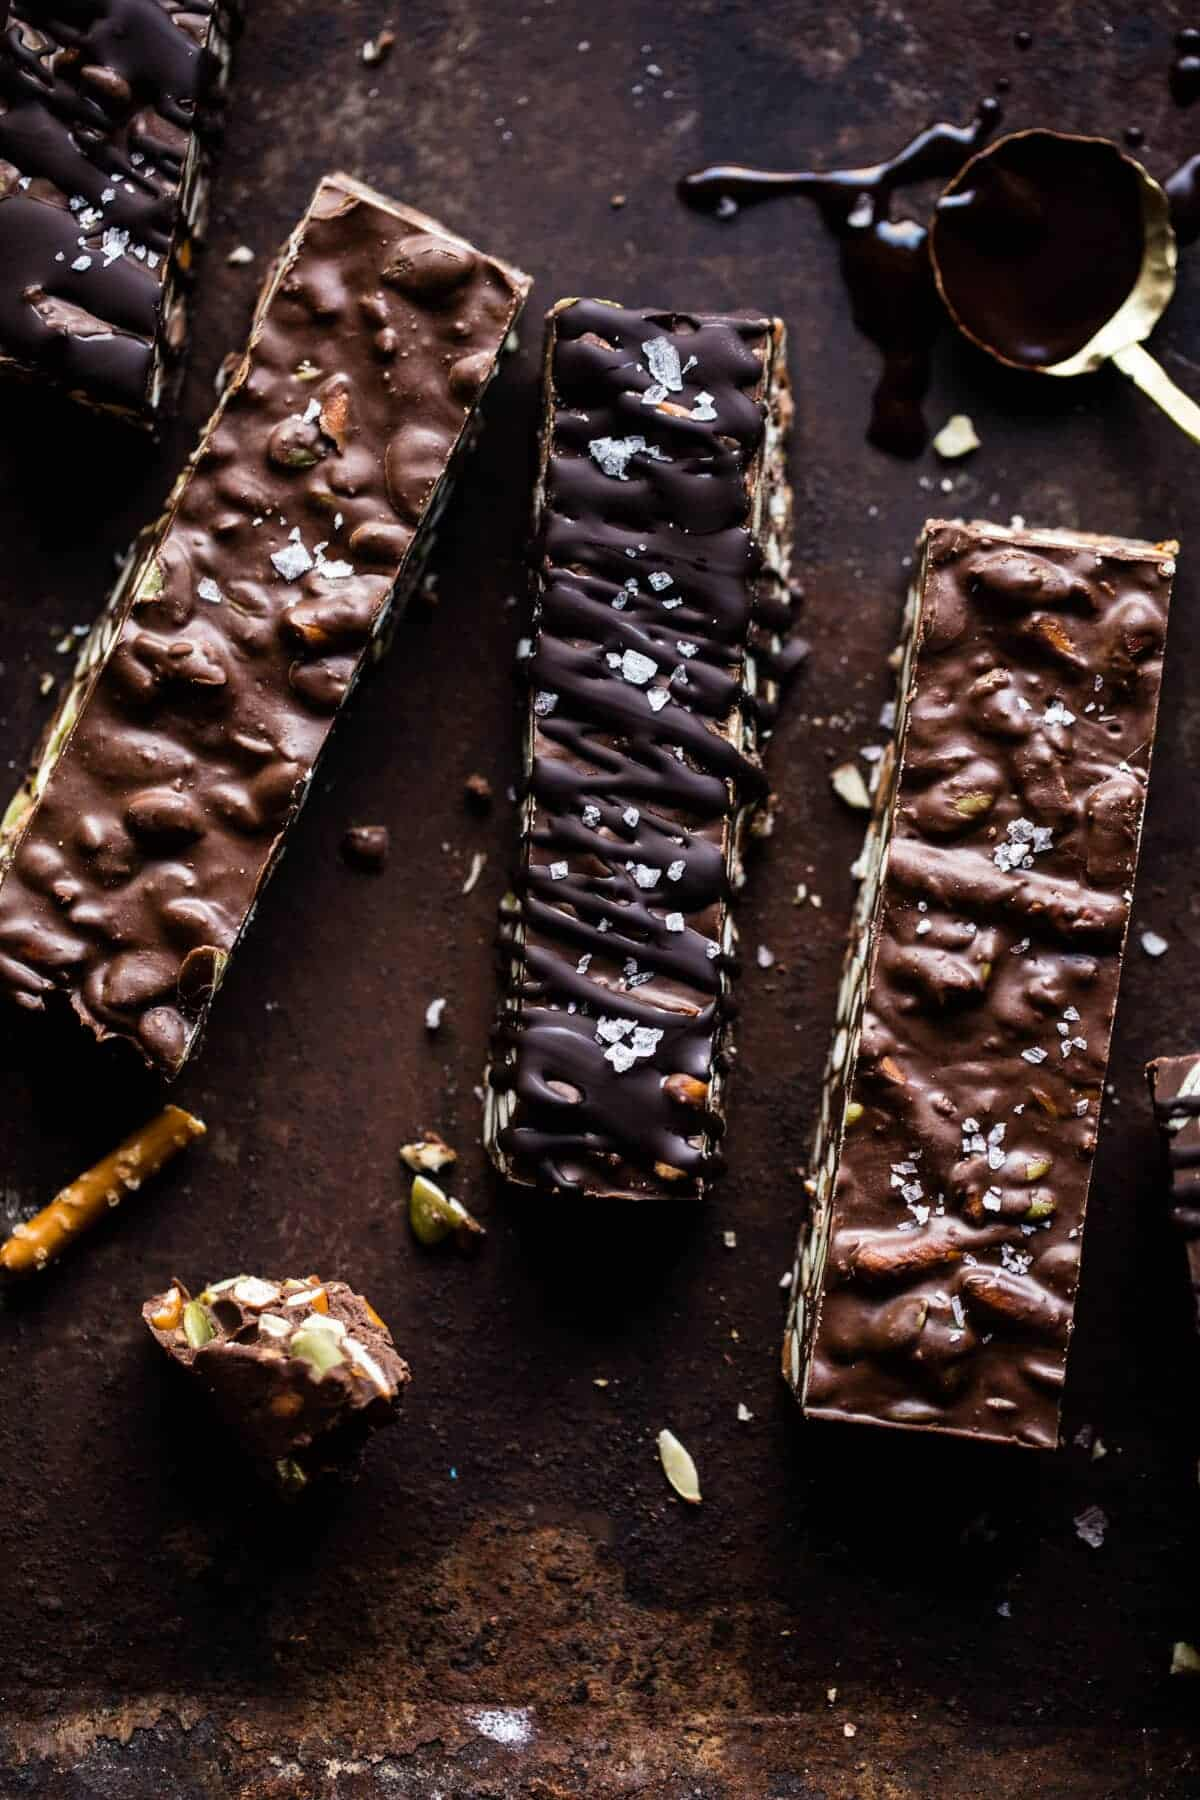 Addicting 5 Ingredient Crockpot Chocolate Bars | halfbakedharvest.com @hbharvest